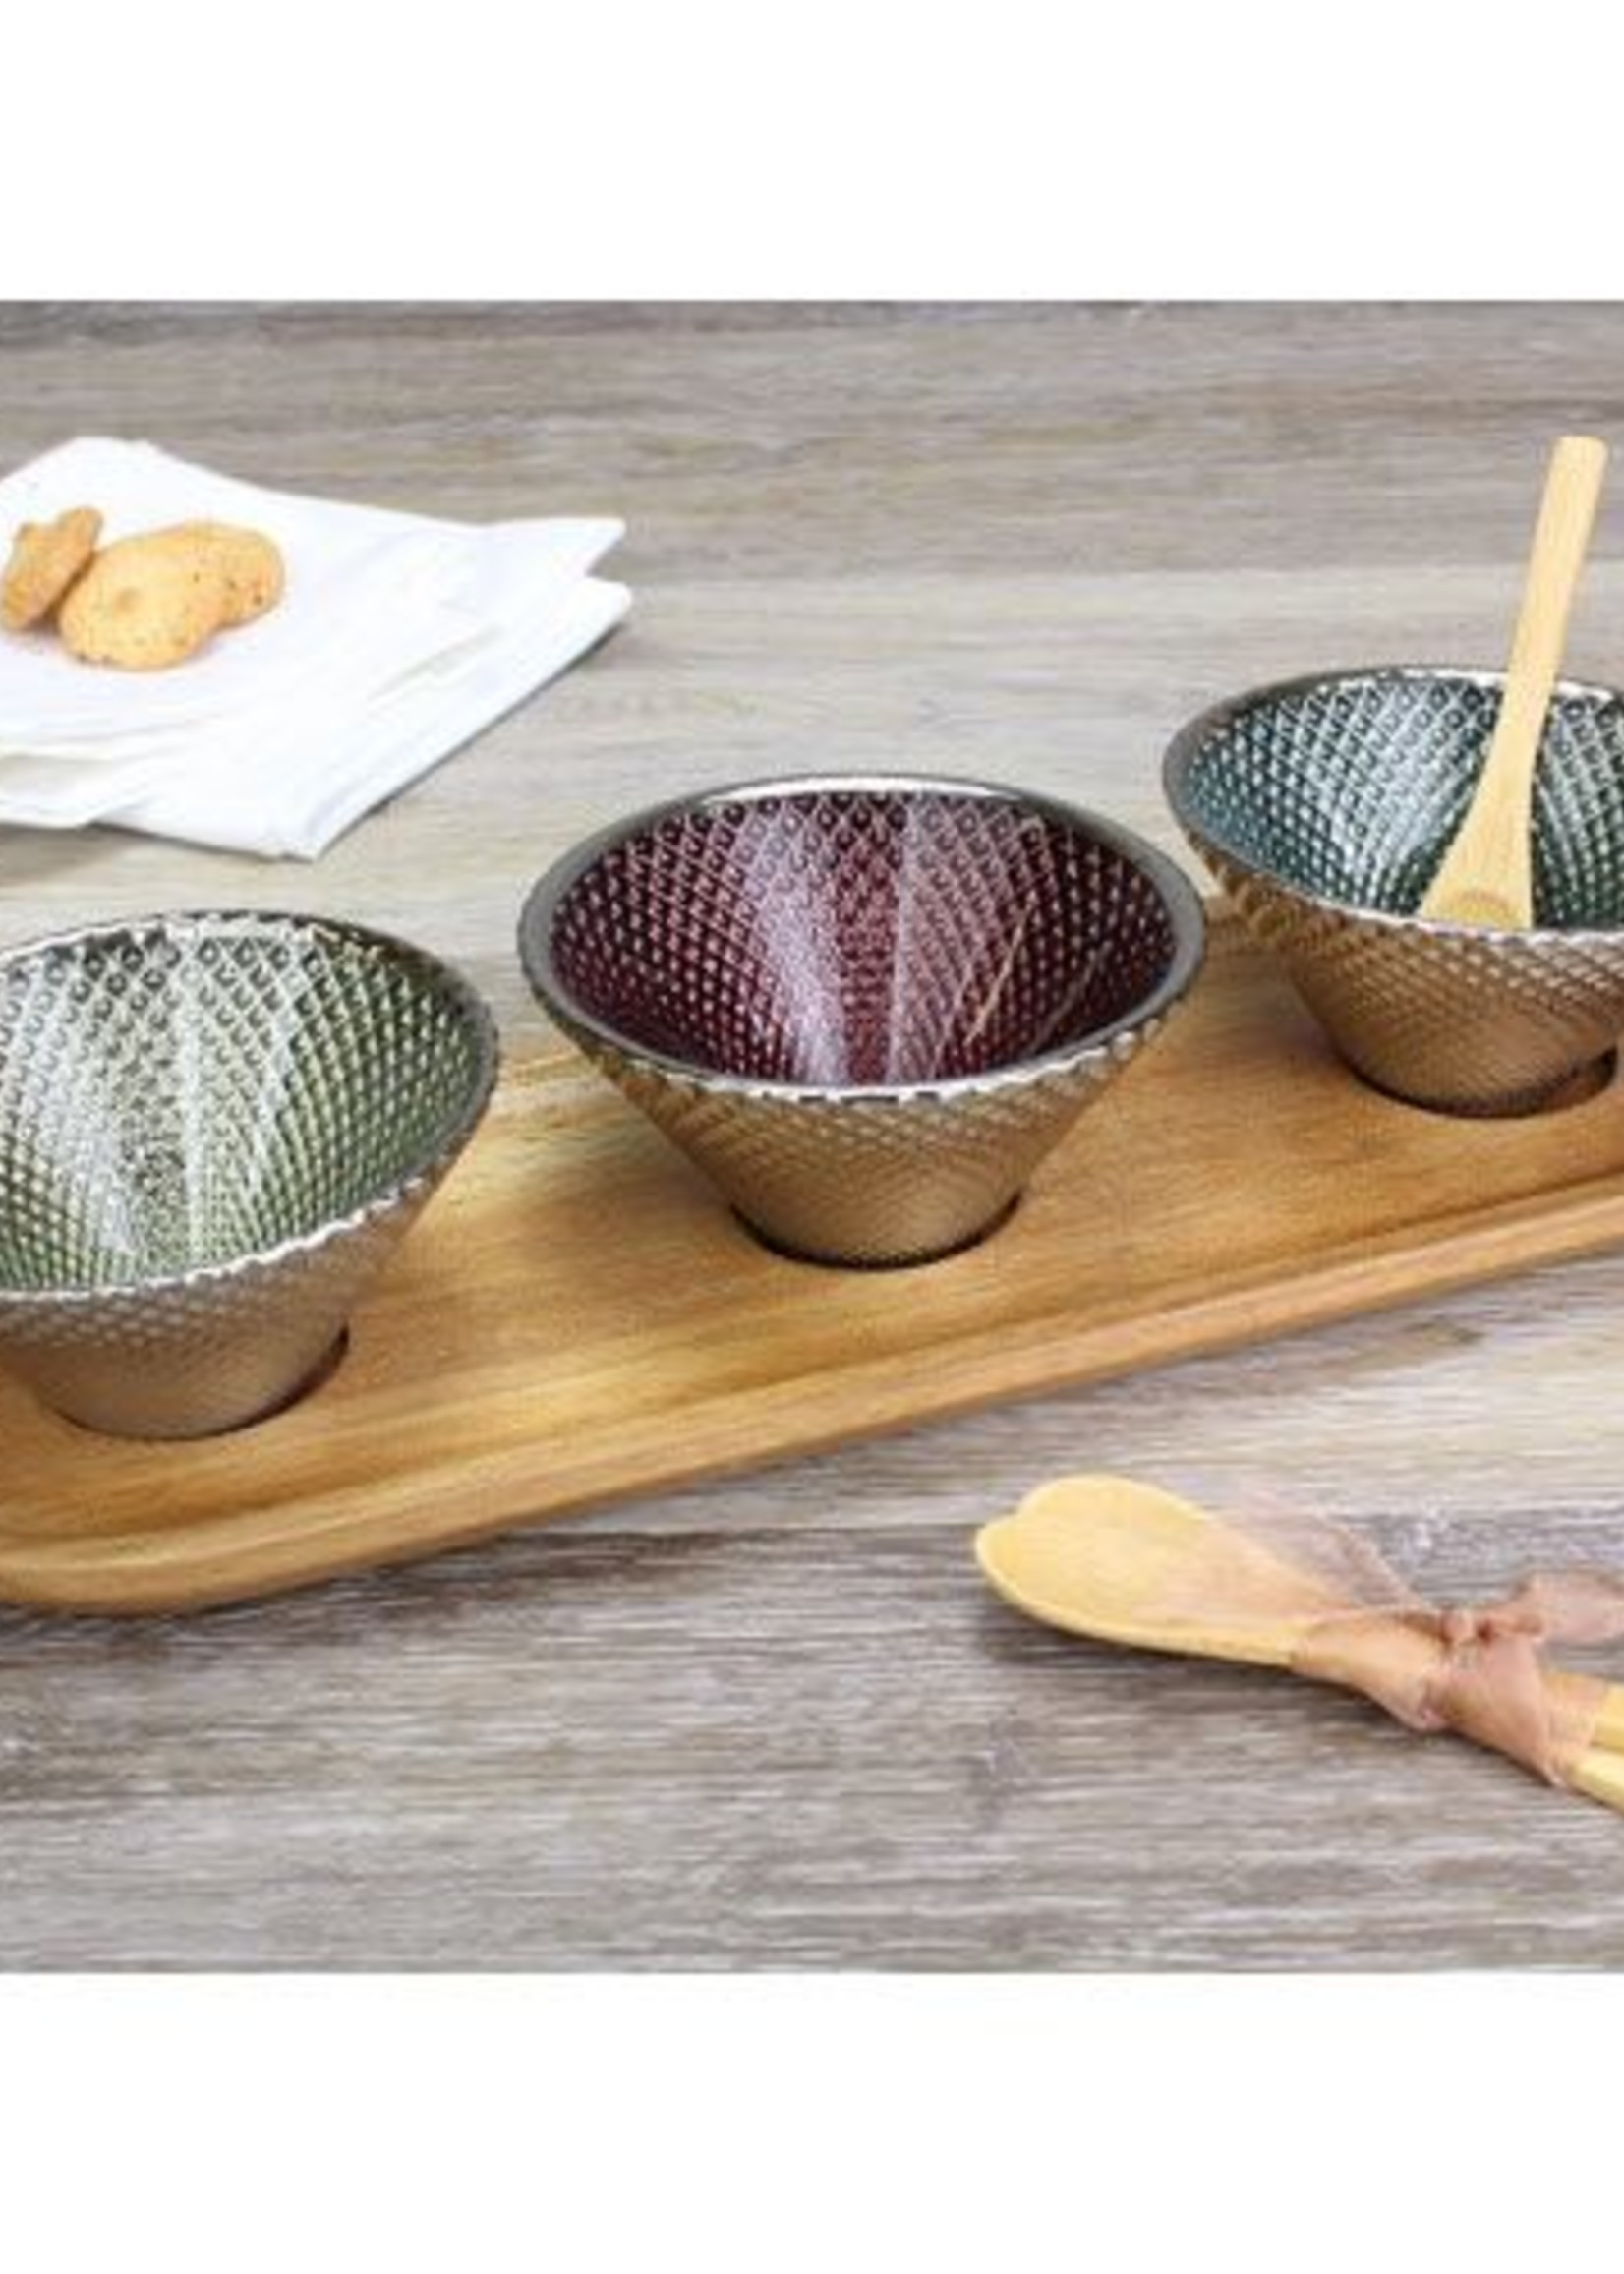 Pampa Bay Set/3 Colored Glass Bowls & Tray w/ Spoons